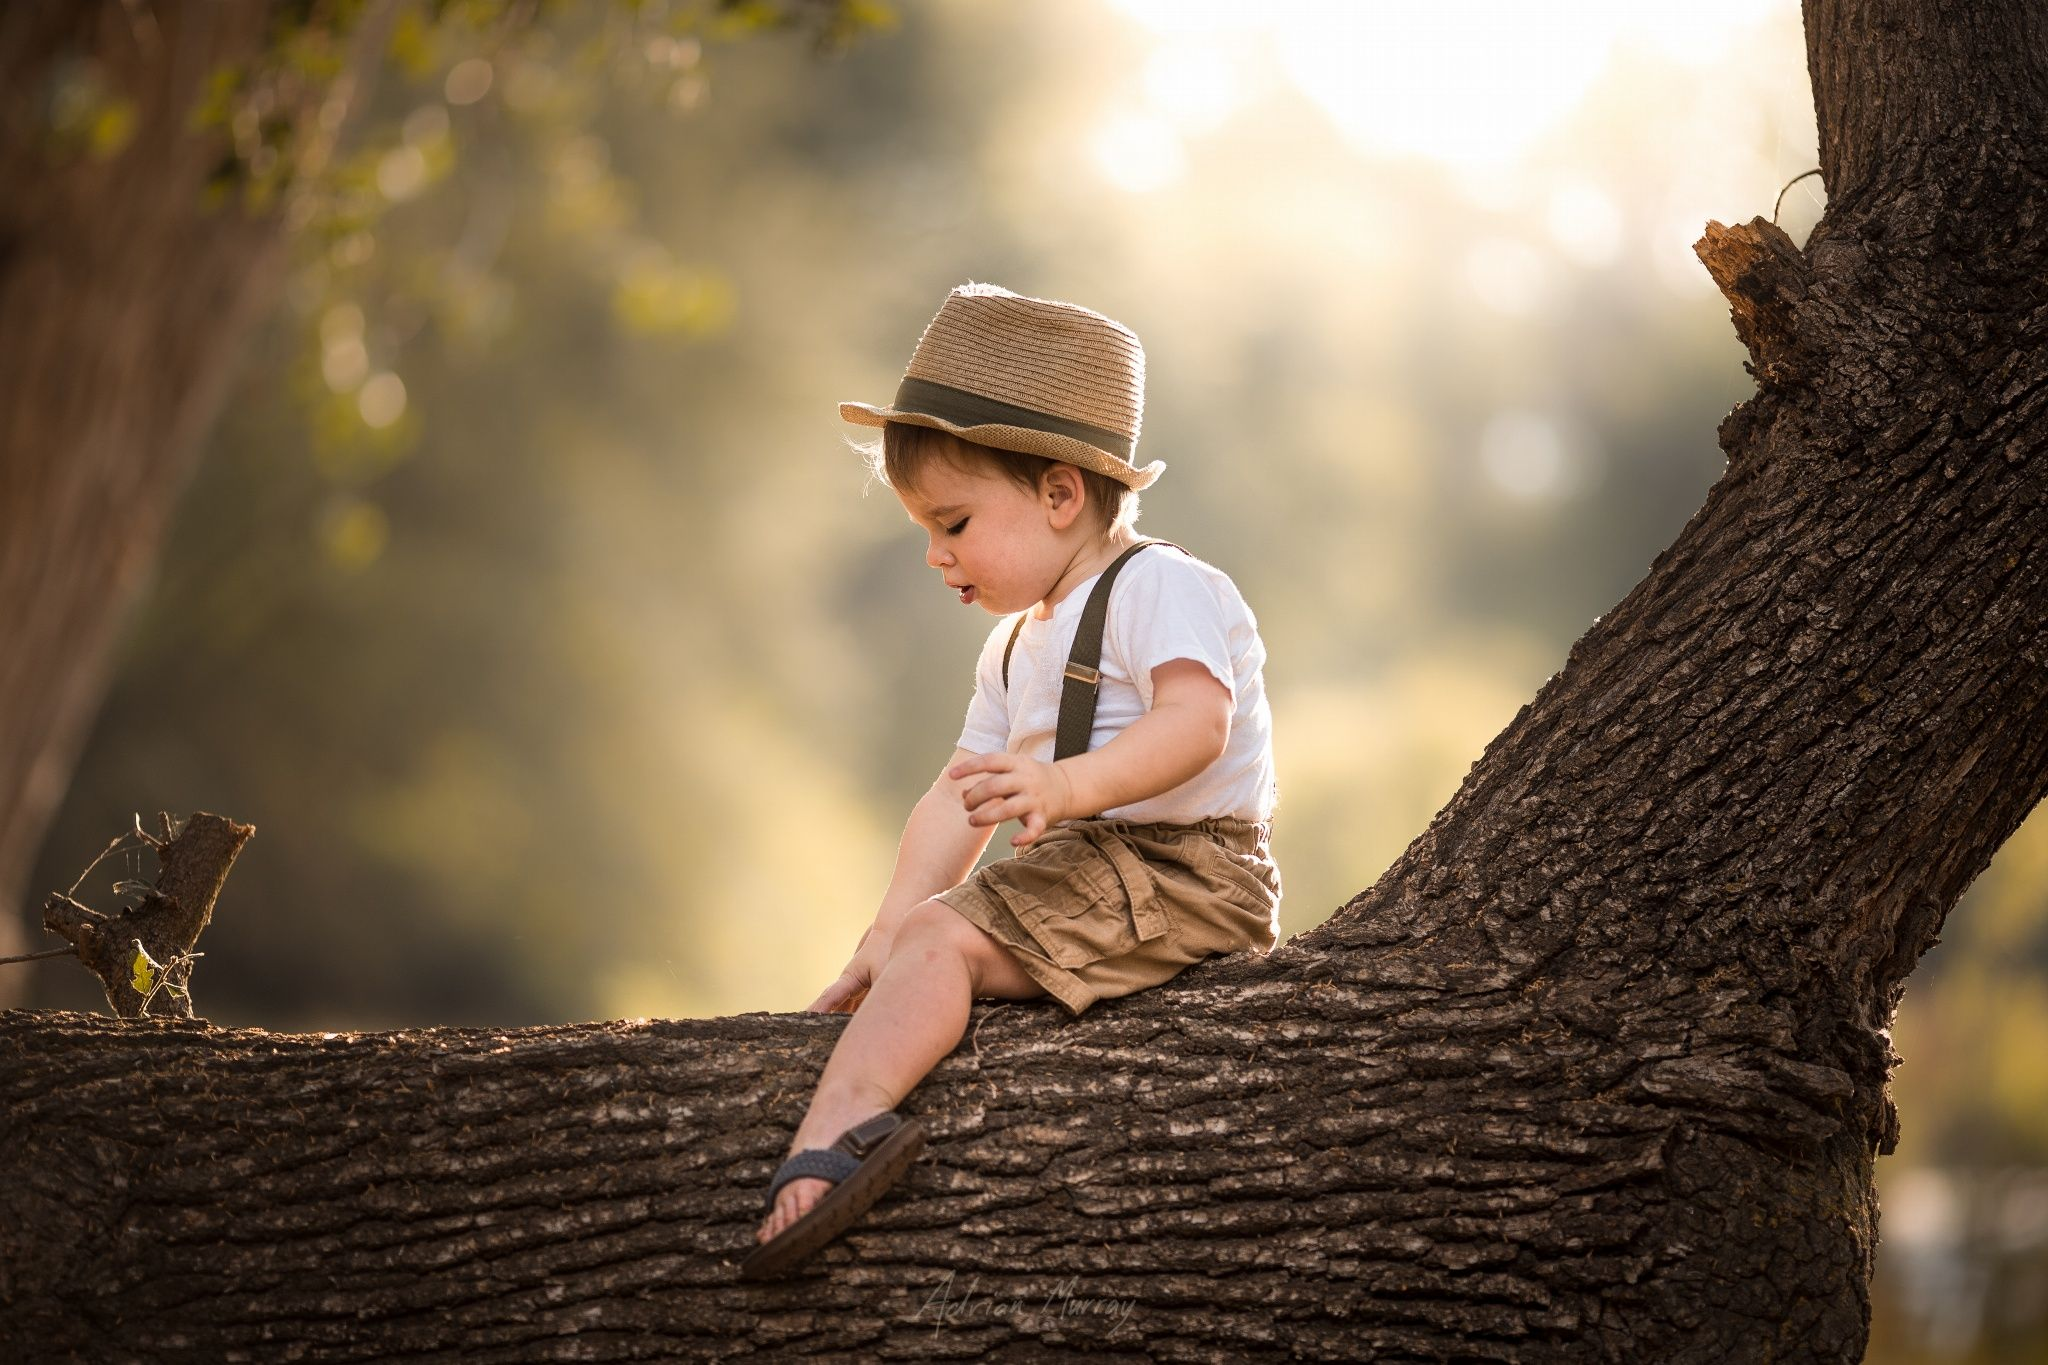 The Climb by Adrian Murray on 500px